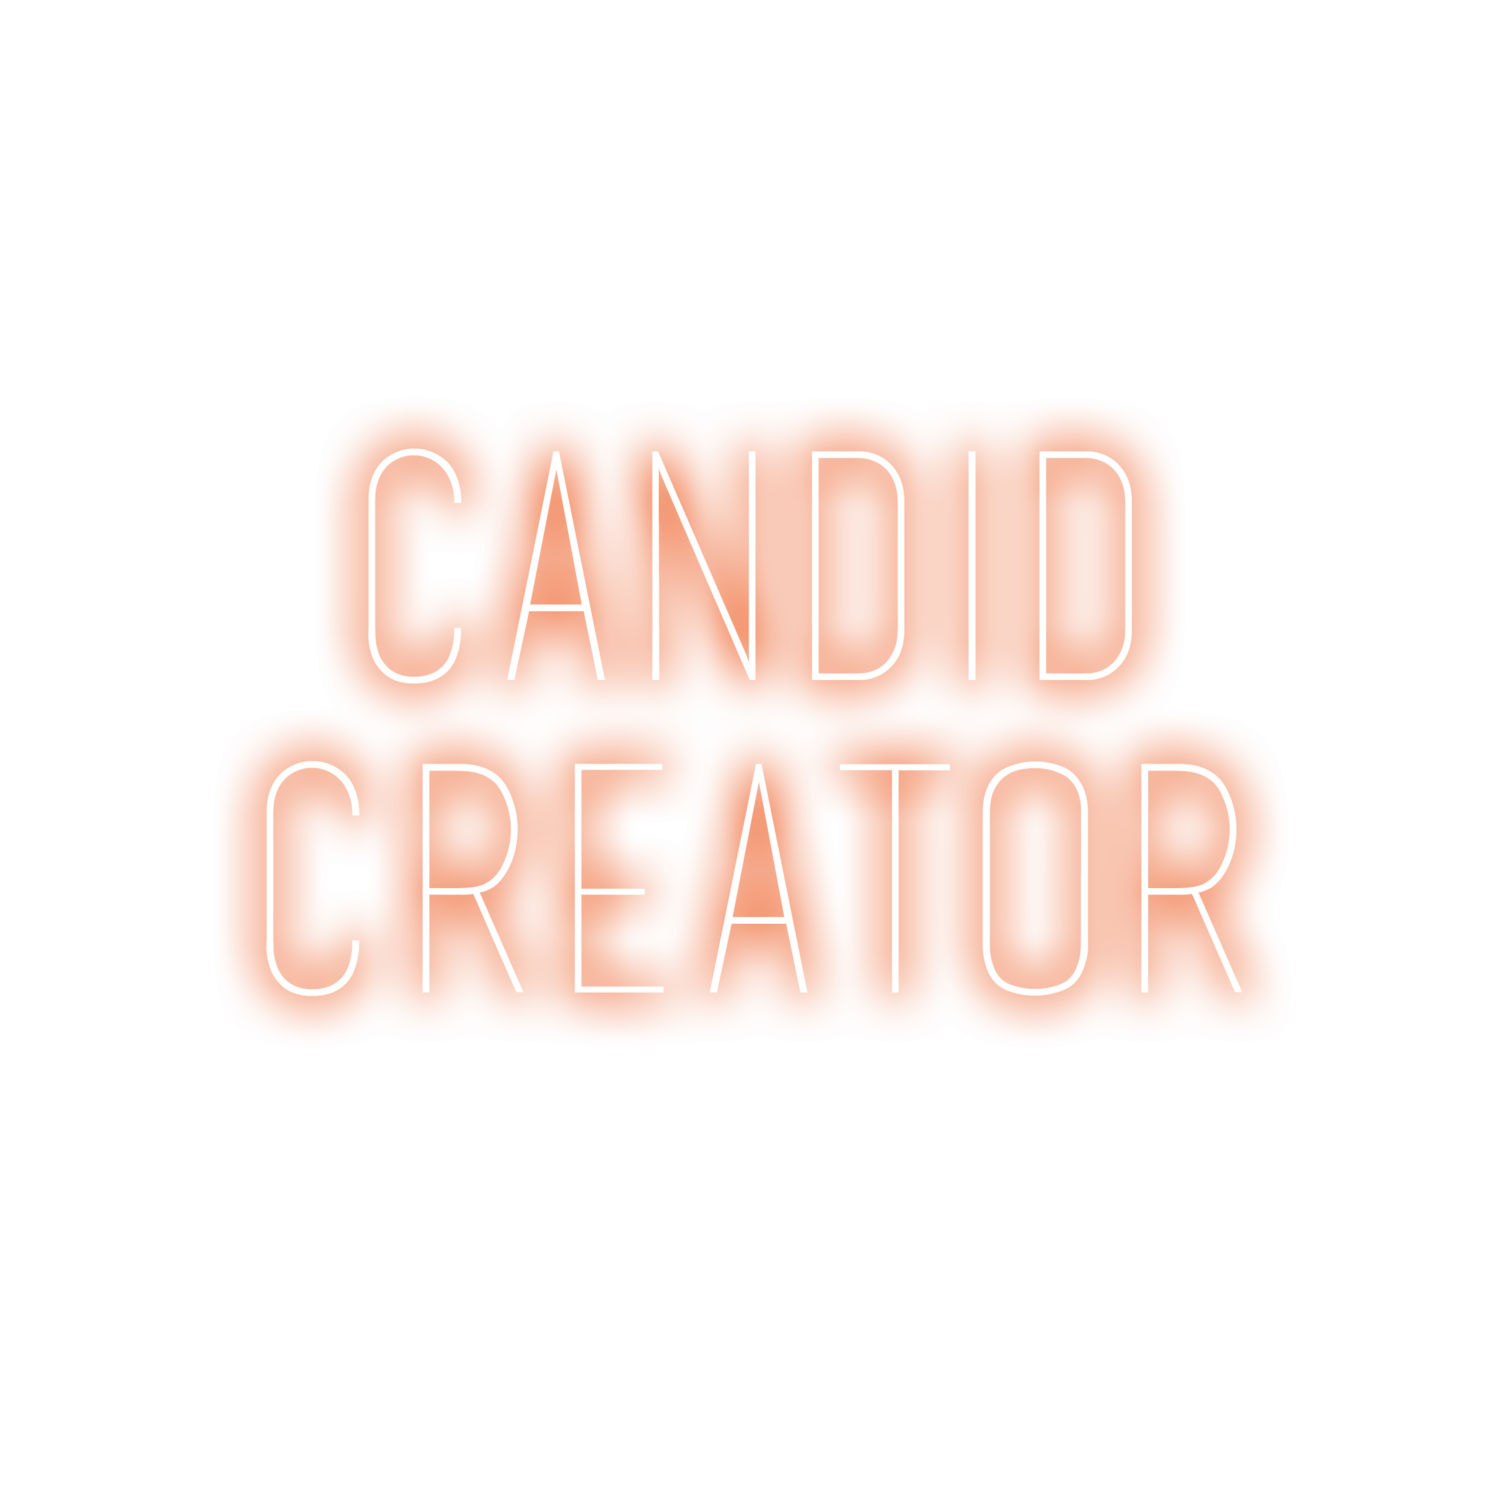 CANDID CREATOR PODCAST